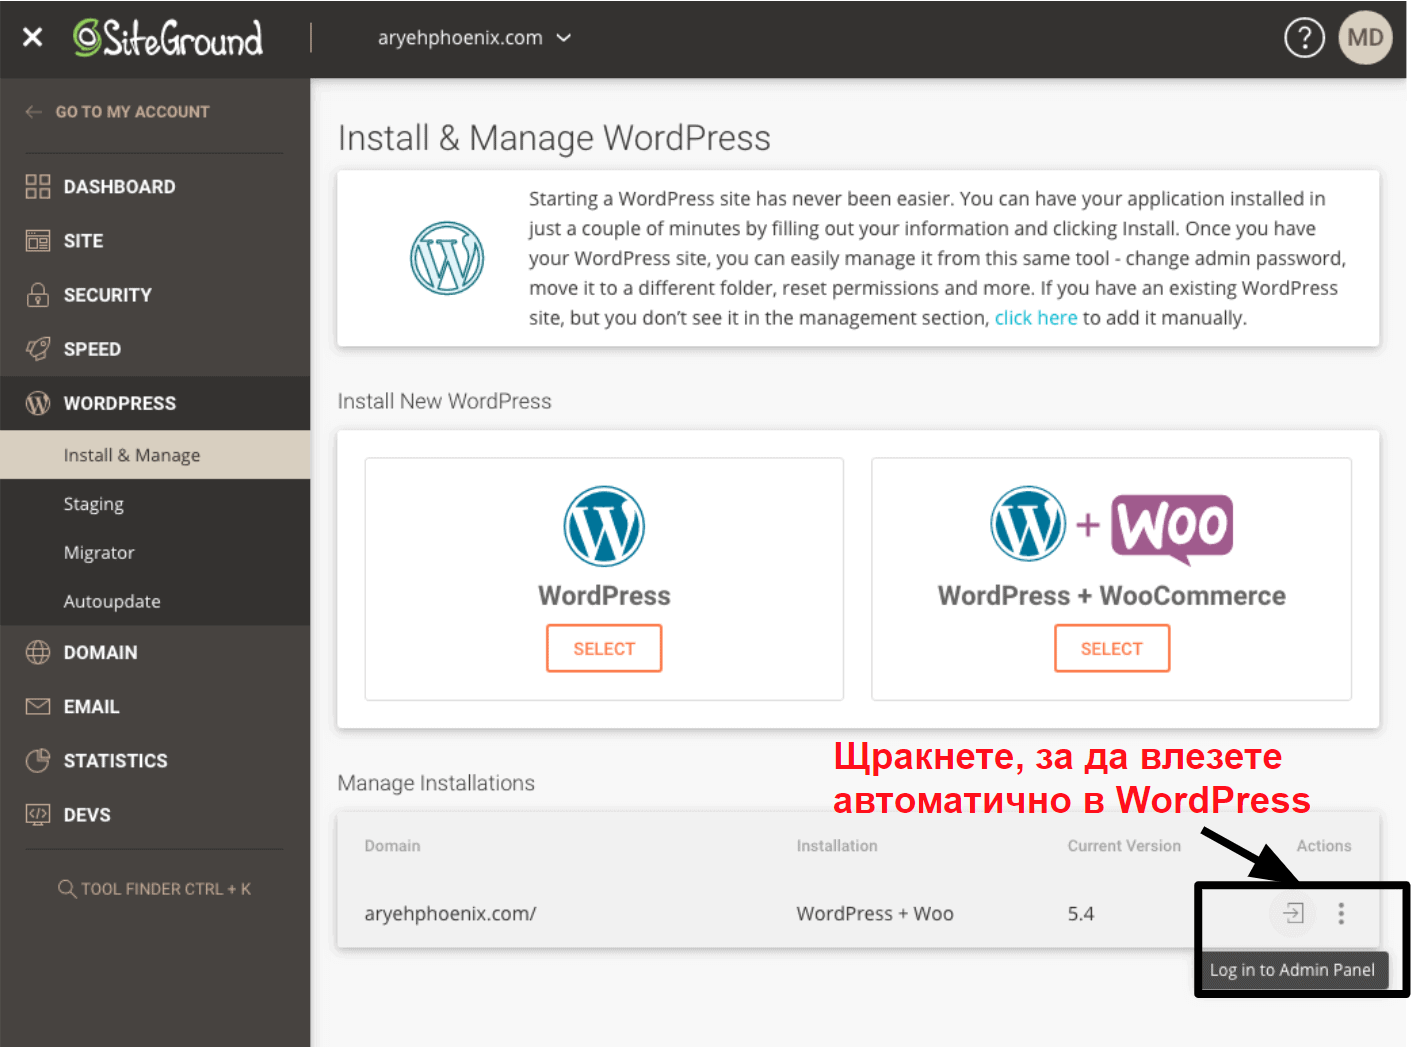 SiteGround offers a one click login option for your WordPress dashboard BG15